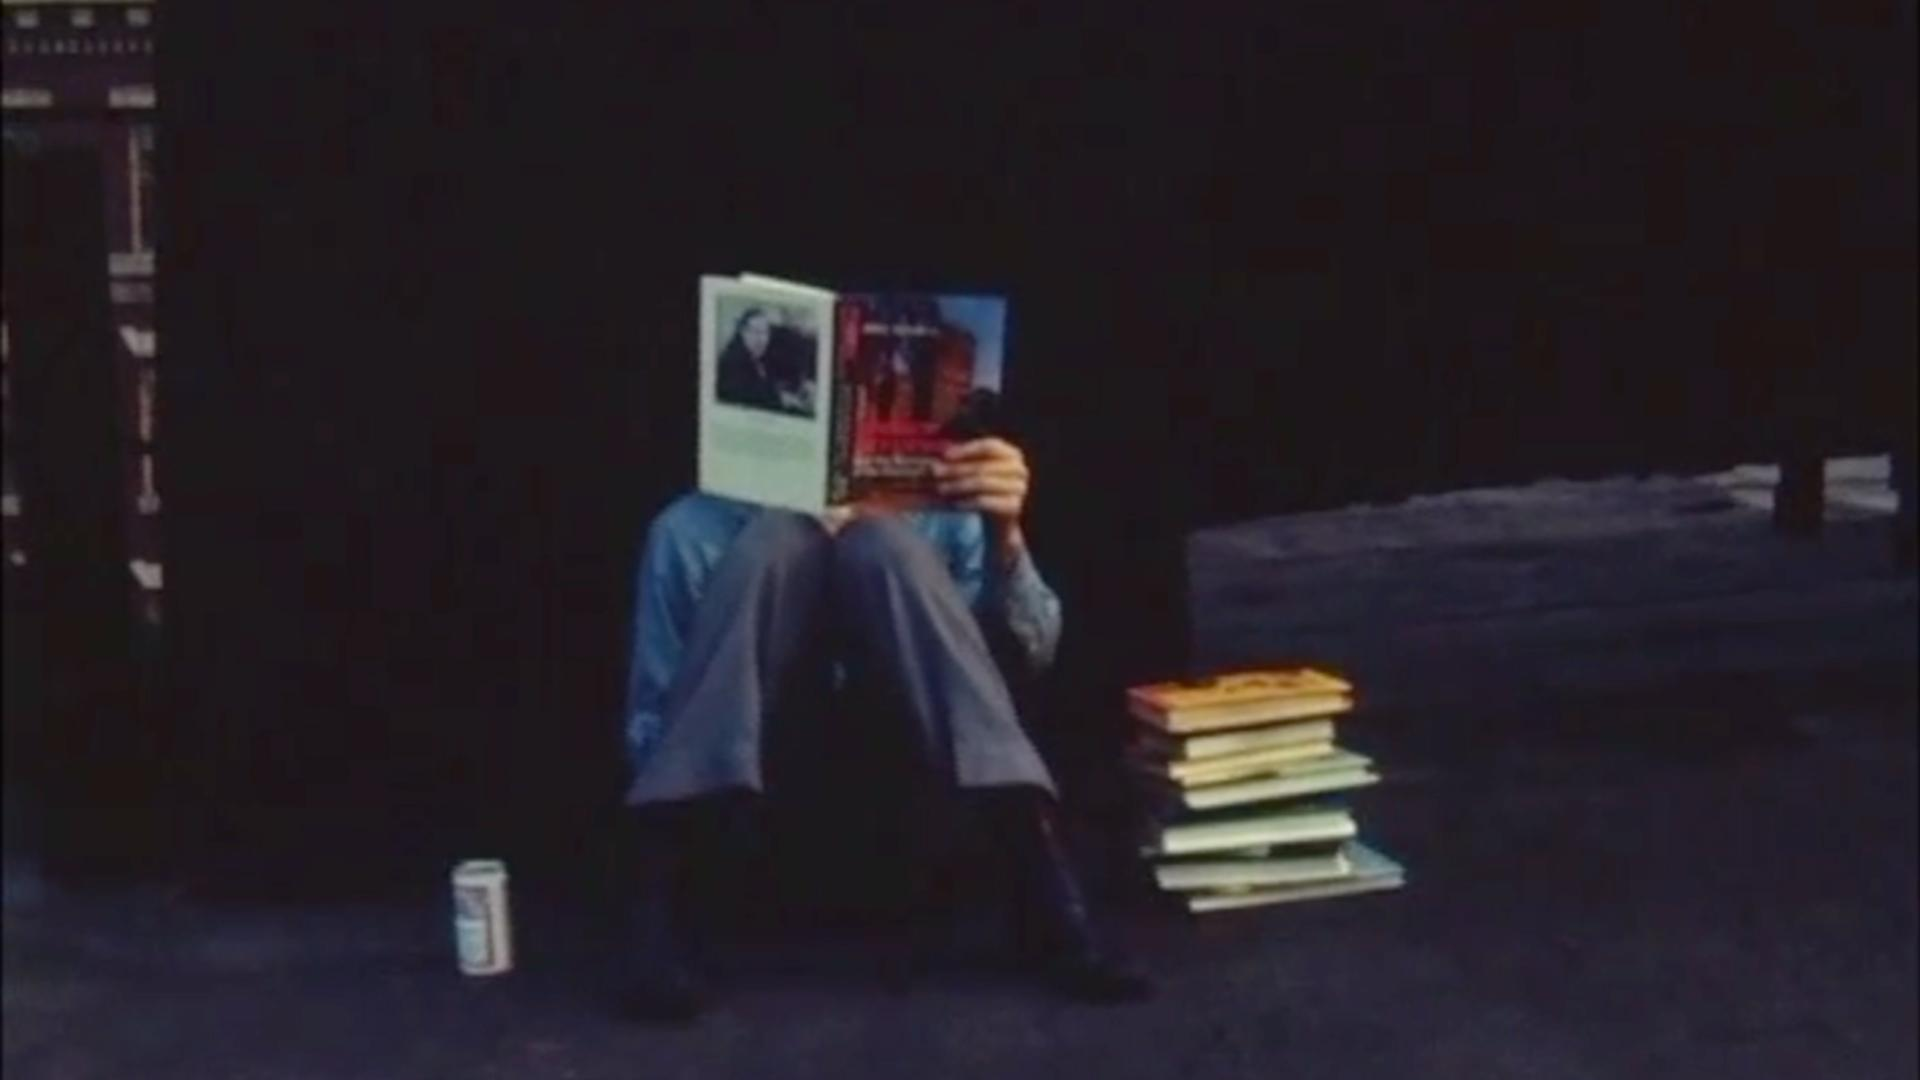 man sitting on the ground reading a book with a pile of books next to him